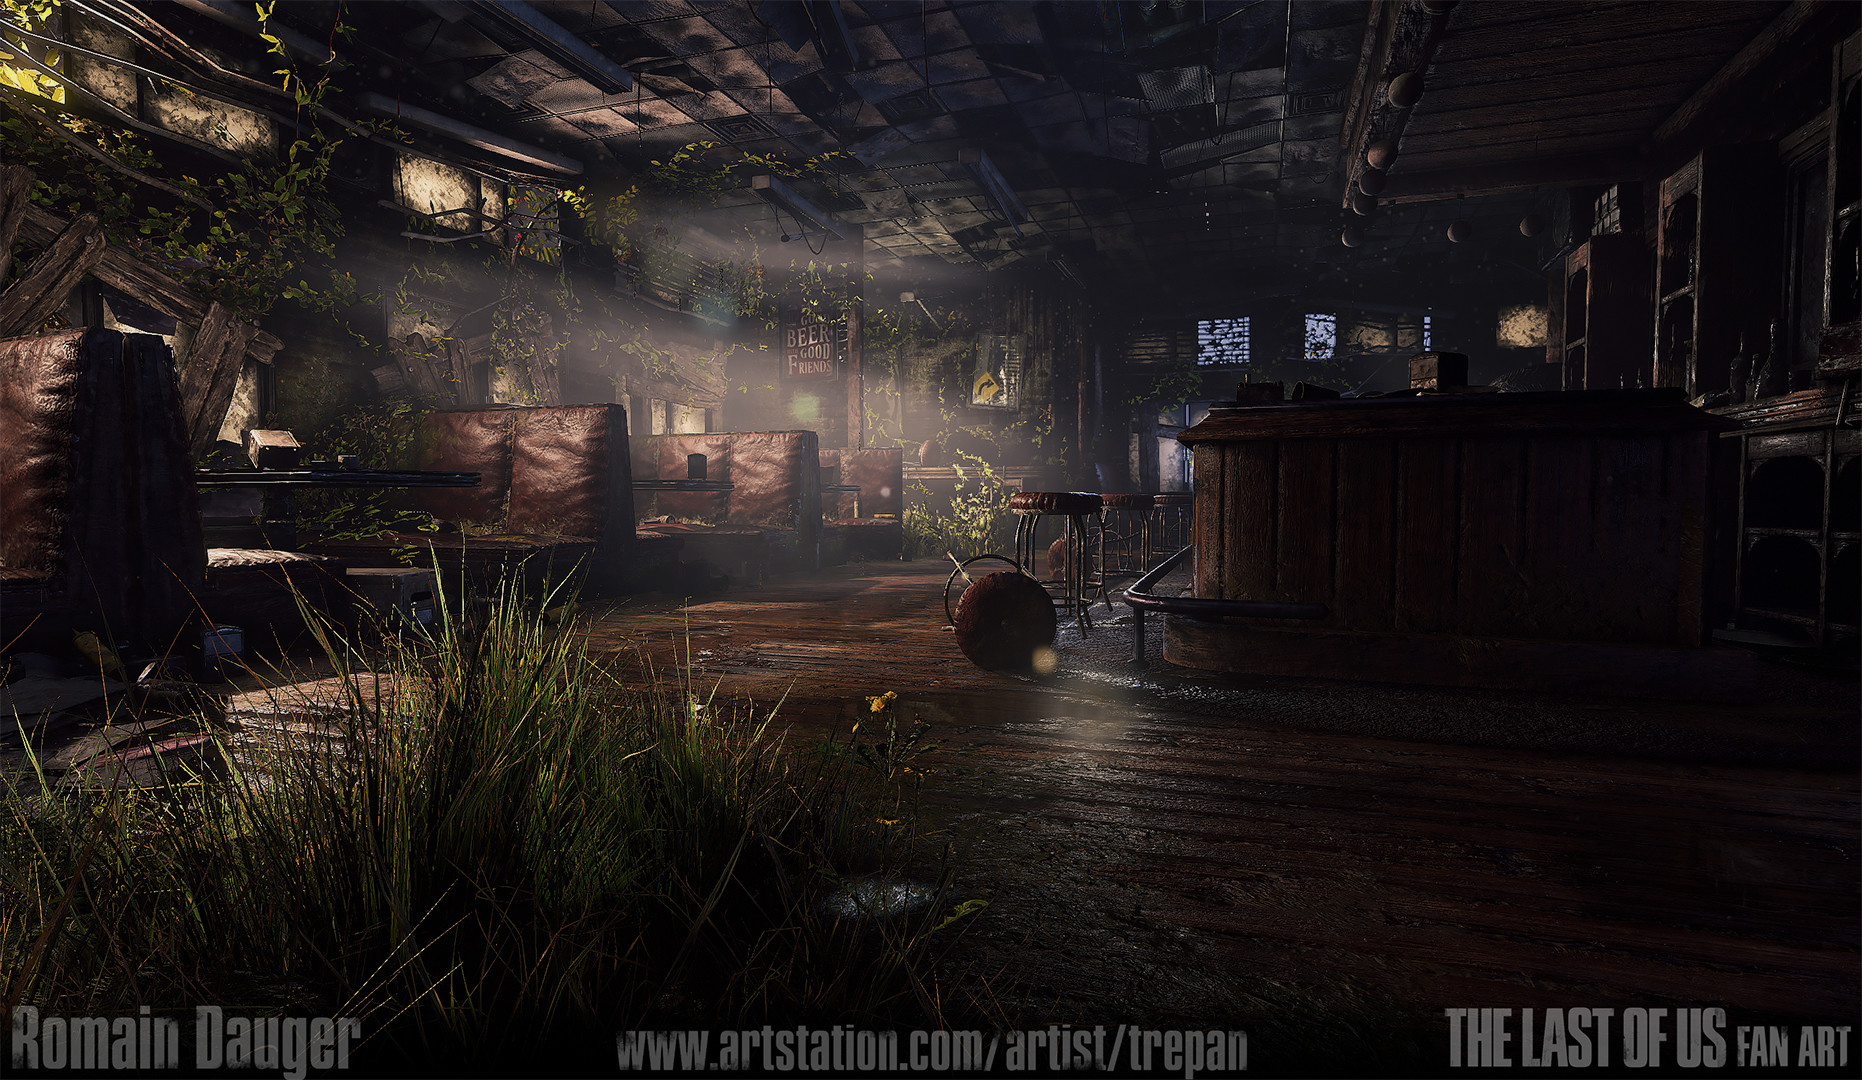 Last of Us: Capturing the Spirit and the Look